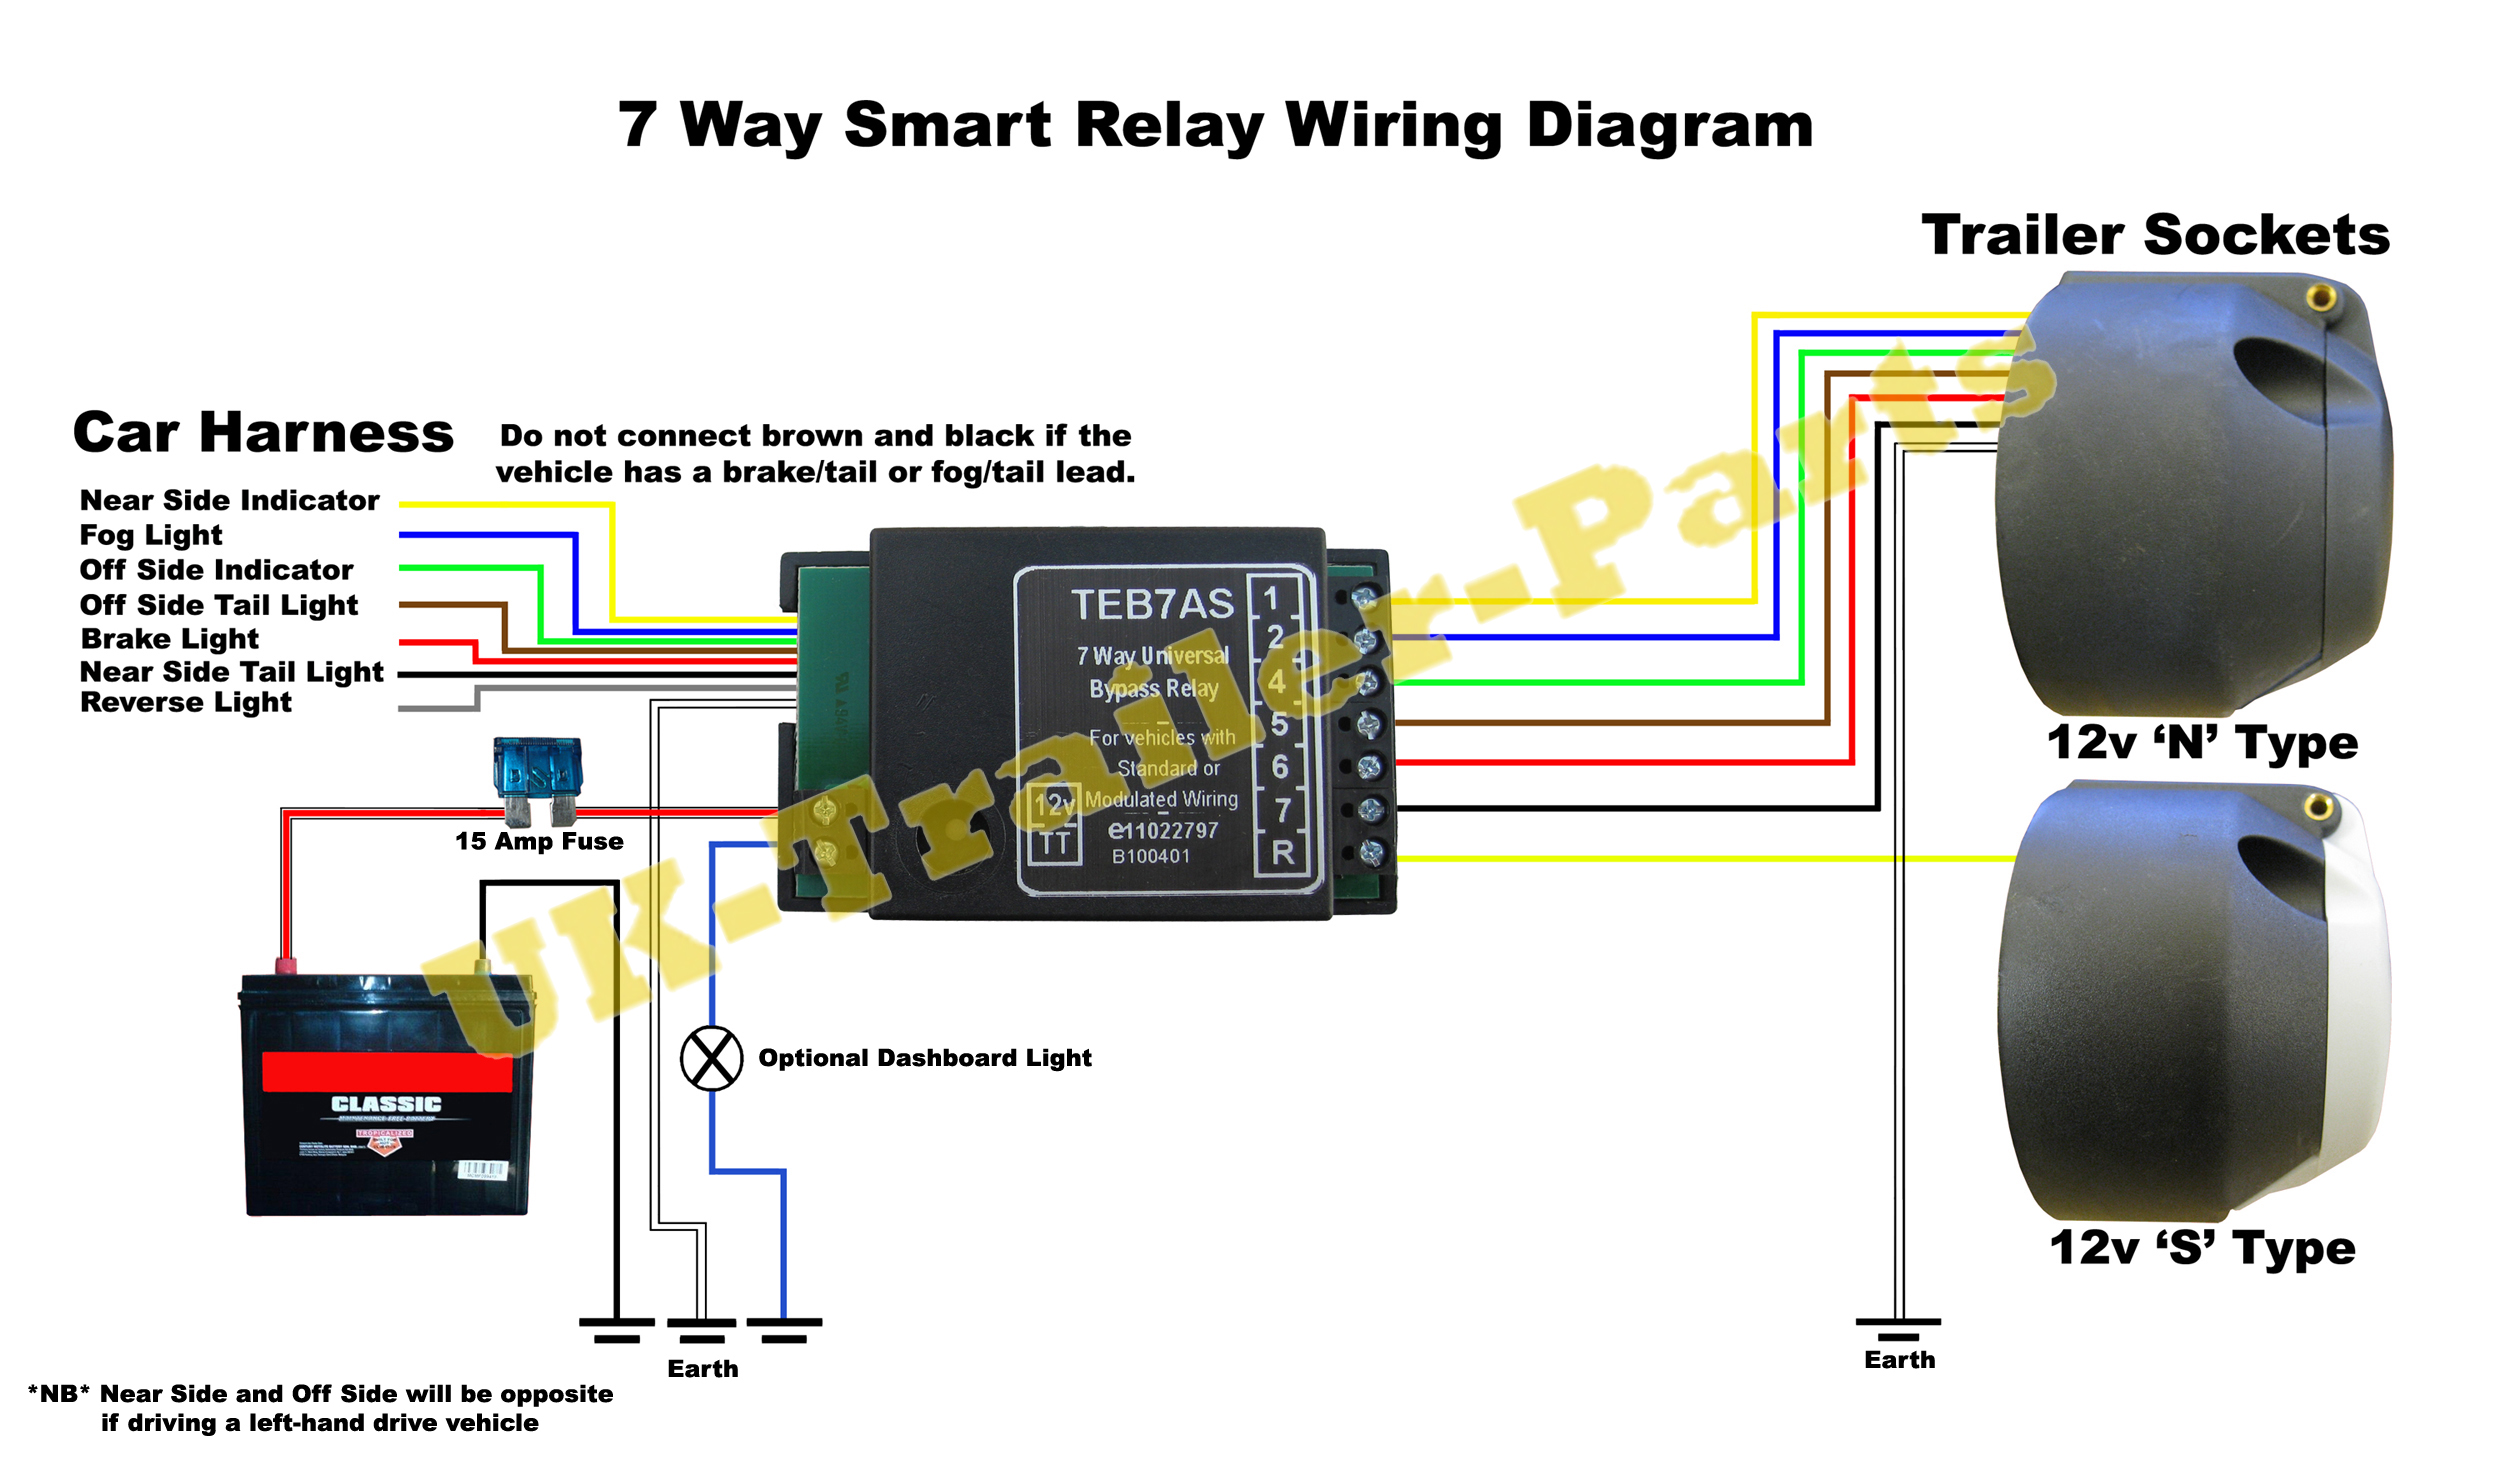 7 way trailer connector wiring diagram 1999 ford f250 super duty universal bypass relay 12v tow bar electrics teb7as